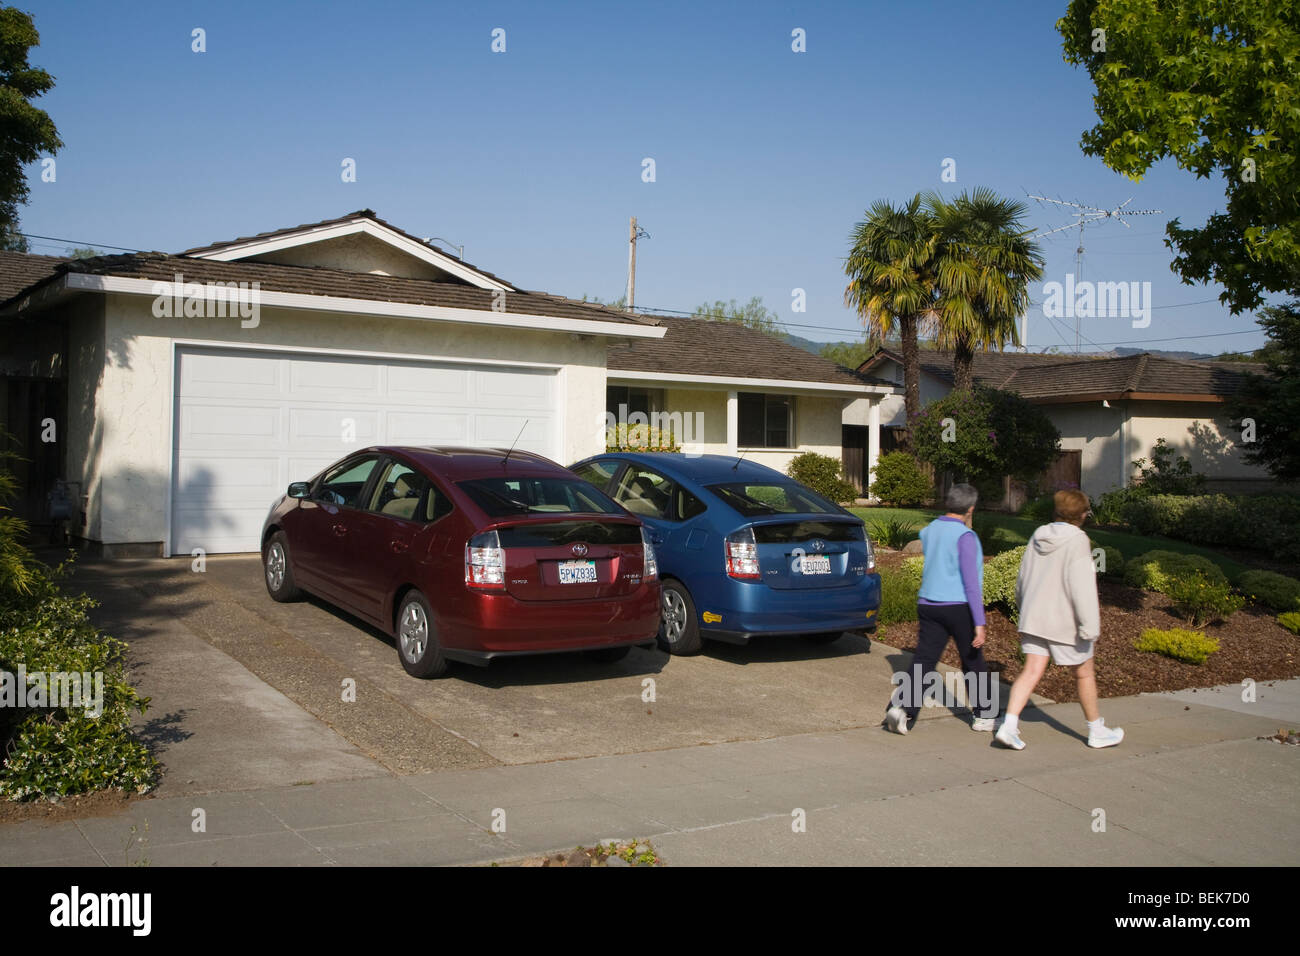 Two people passing two Toyota Prius hybrid cars which are parked in driveway. Cupertino, California, USA - Stock Image